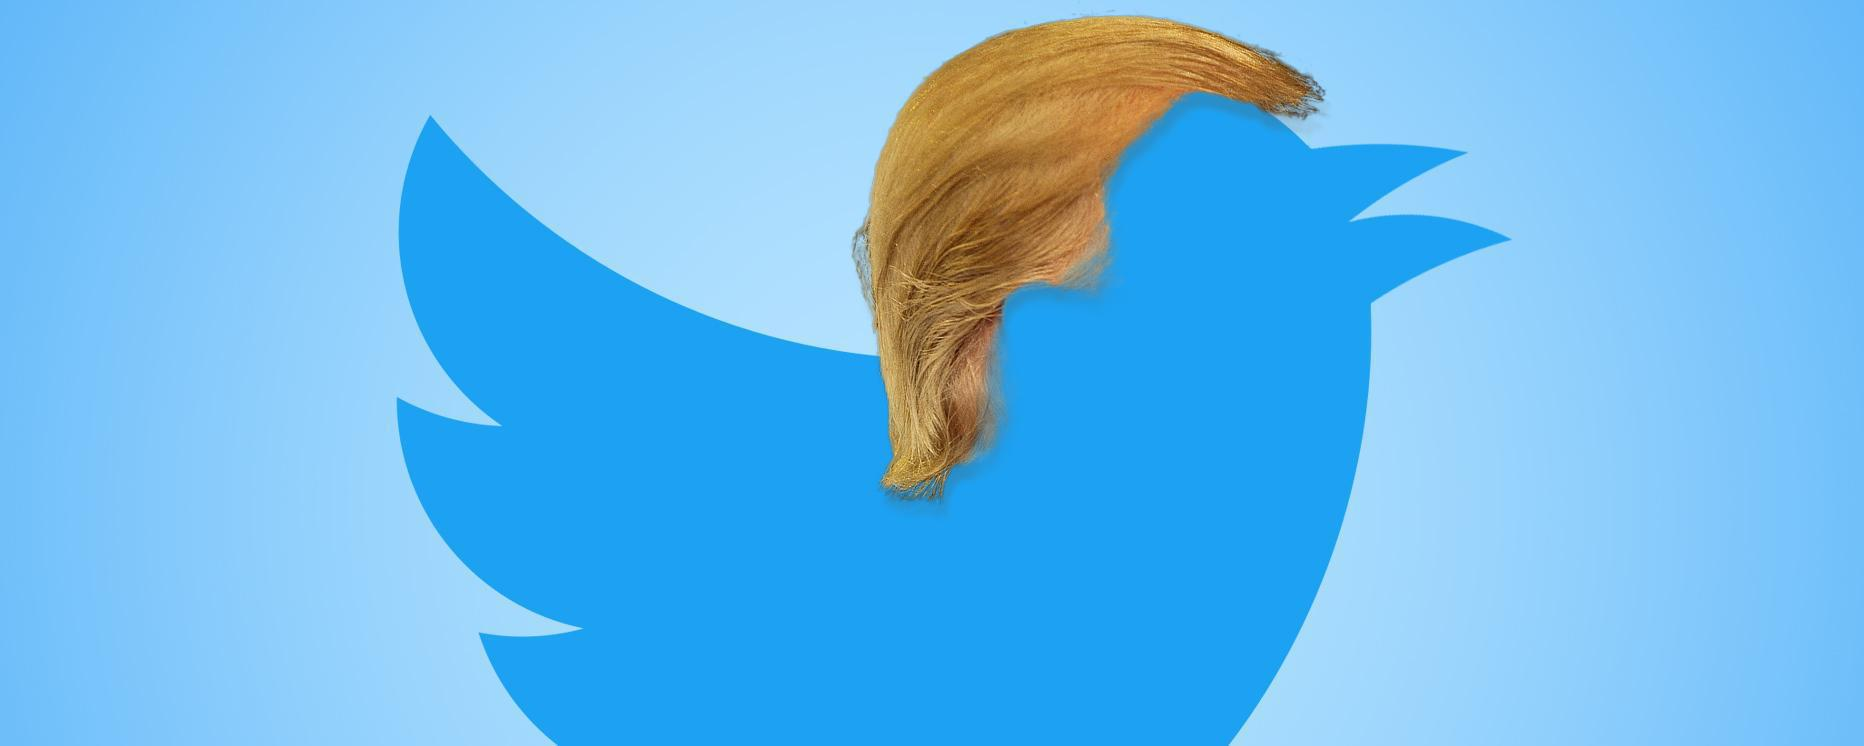 ... Searchable Archive of Donald Trump's Tweets | VICE | United States